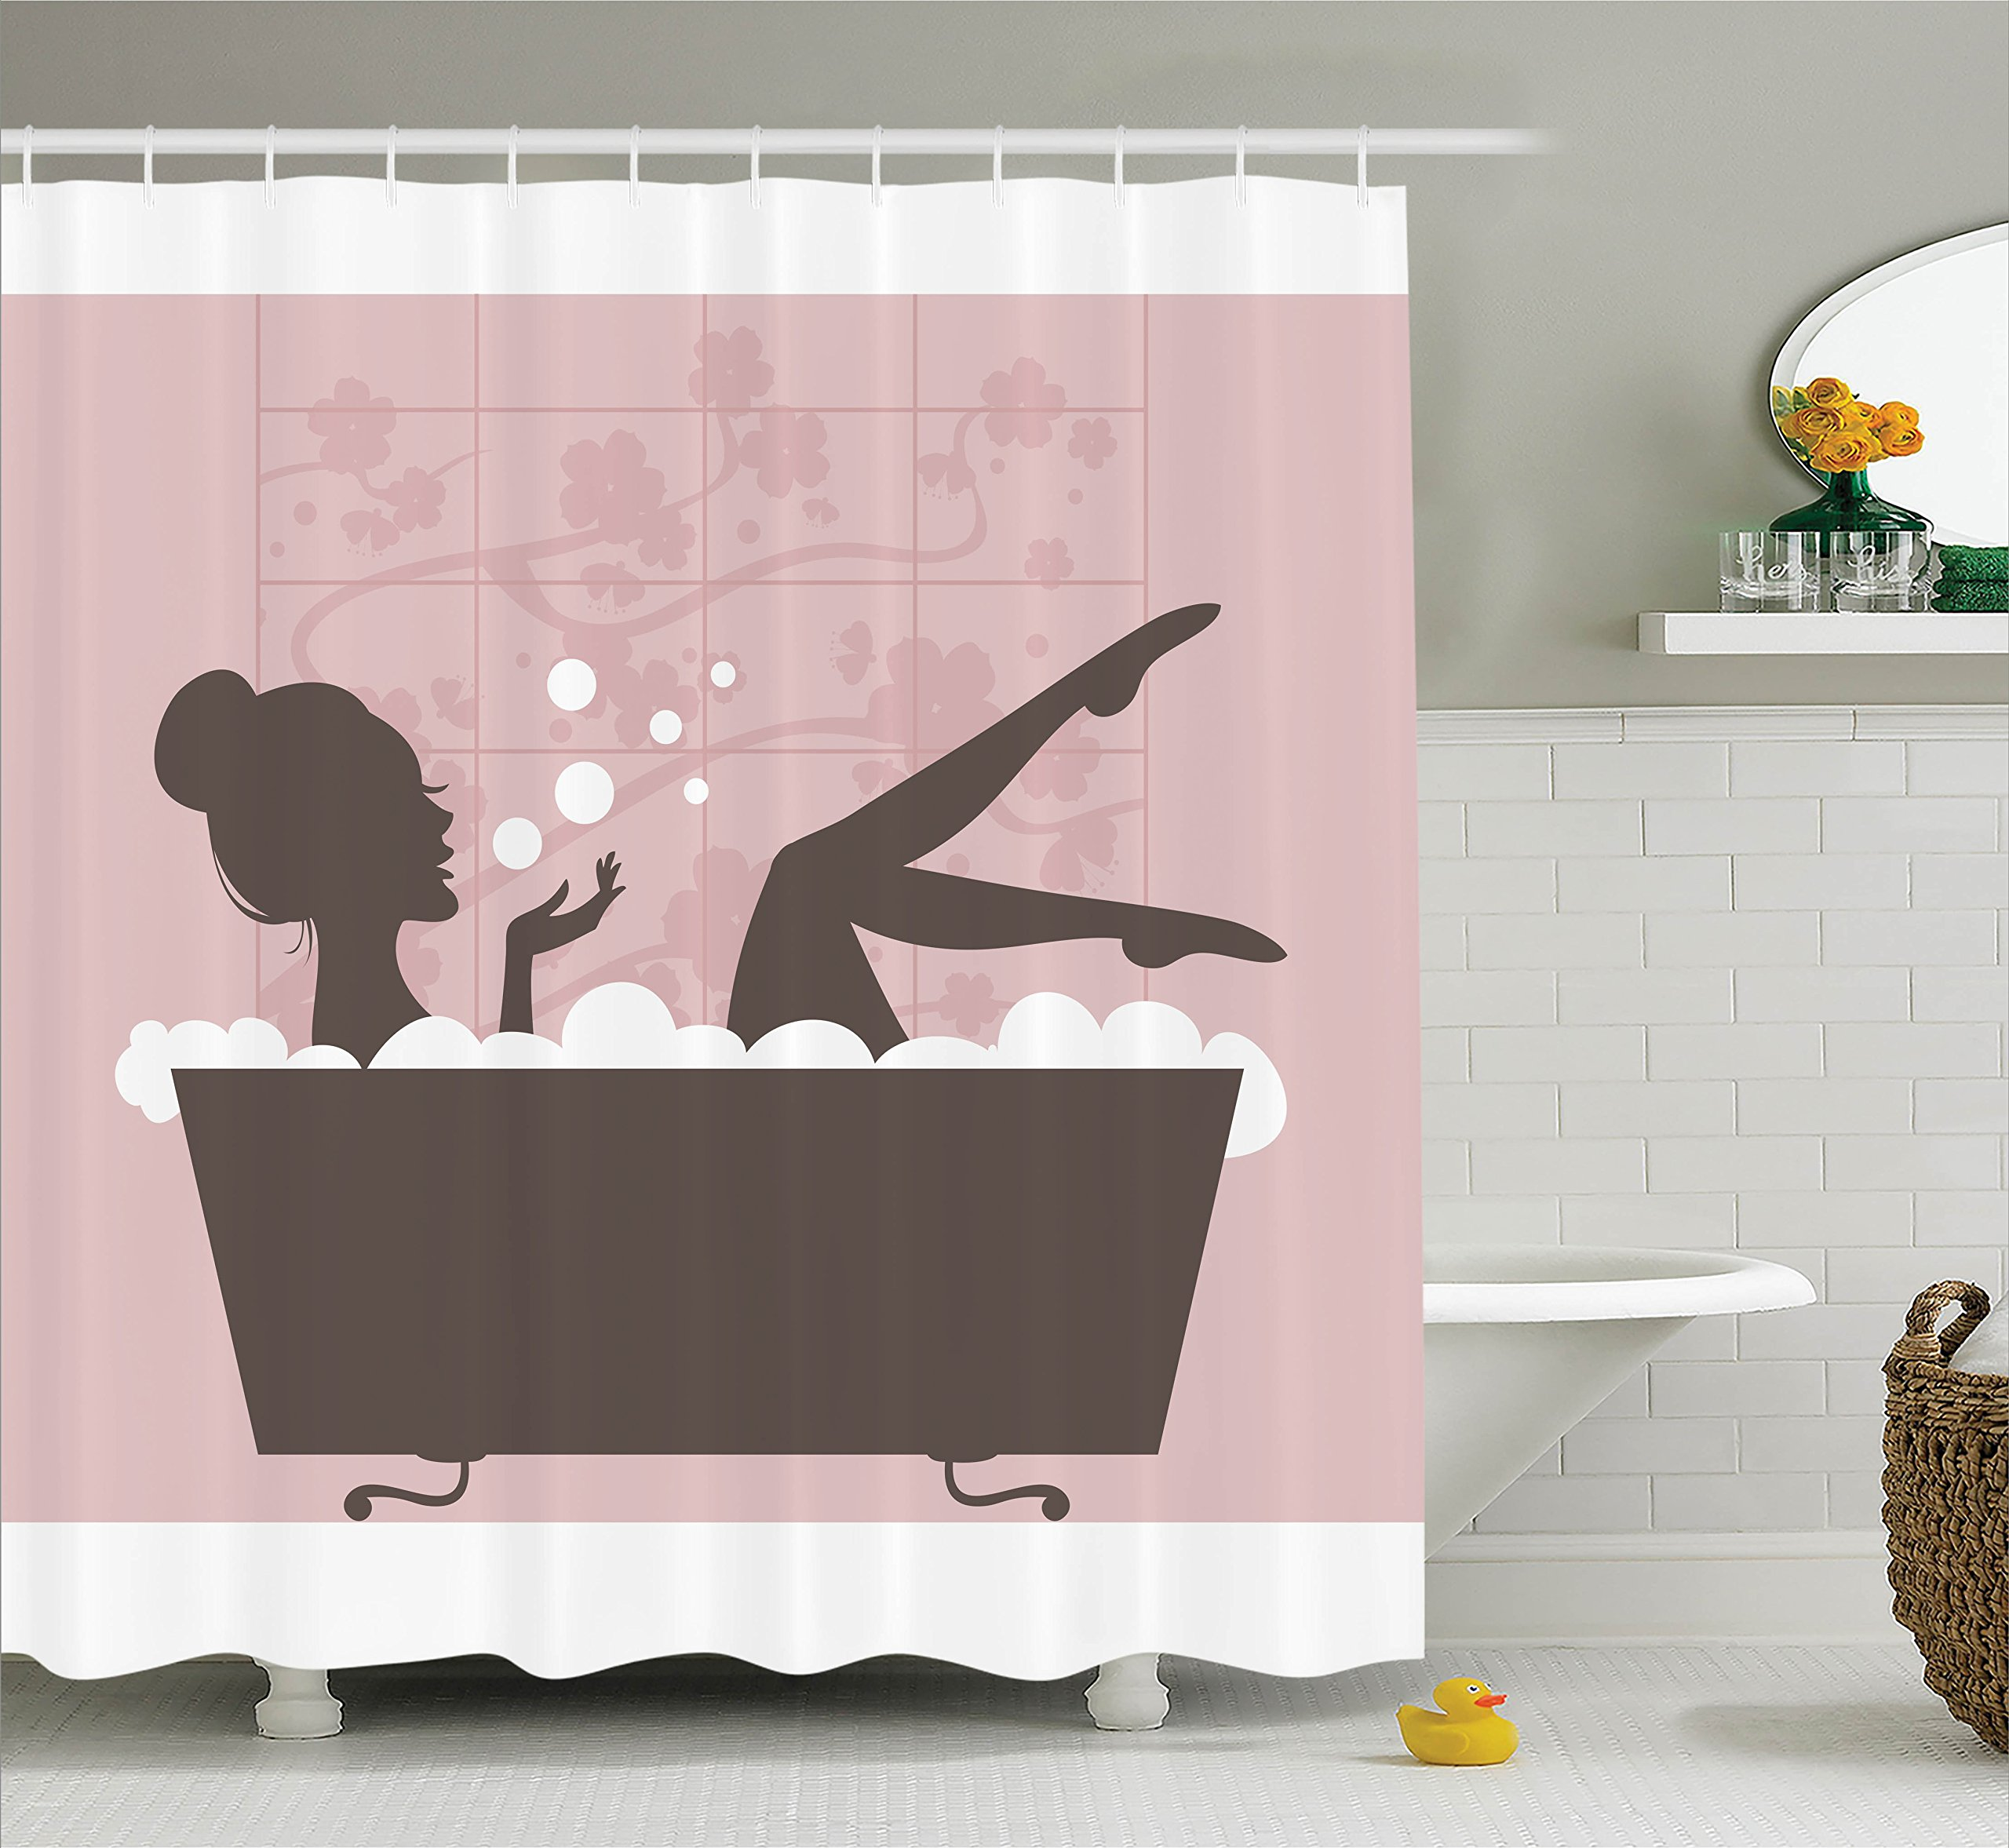 Ambesonne Teen Girl Women Decor, Beautiful Woman in Bath Tub Spa Relaxation Treatment Concept Vintage Style, Fabric Bathroom Shower Curtain Set with Hooks, Powder Pink Dark Taupe